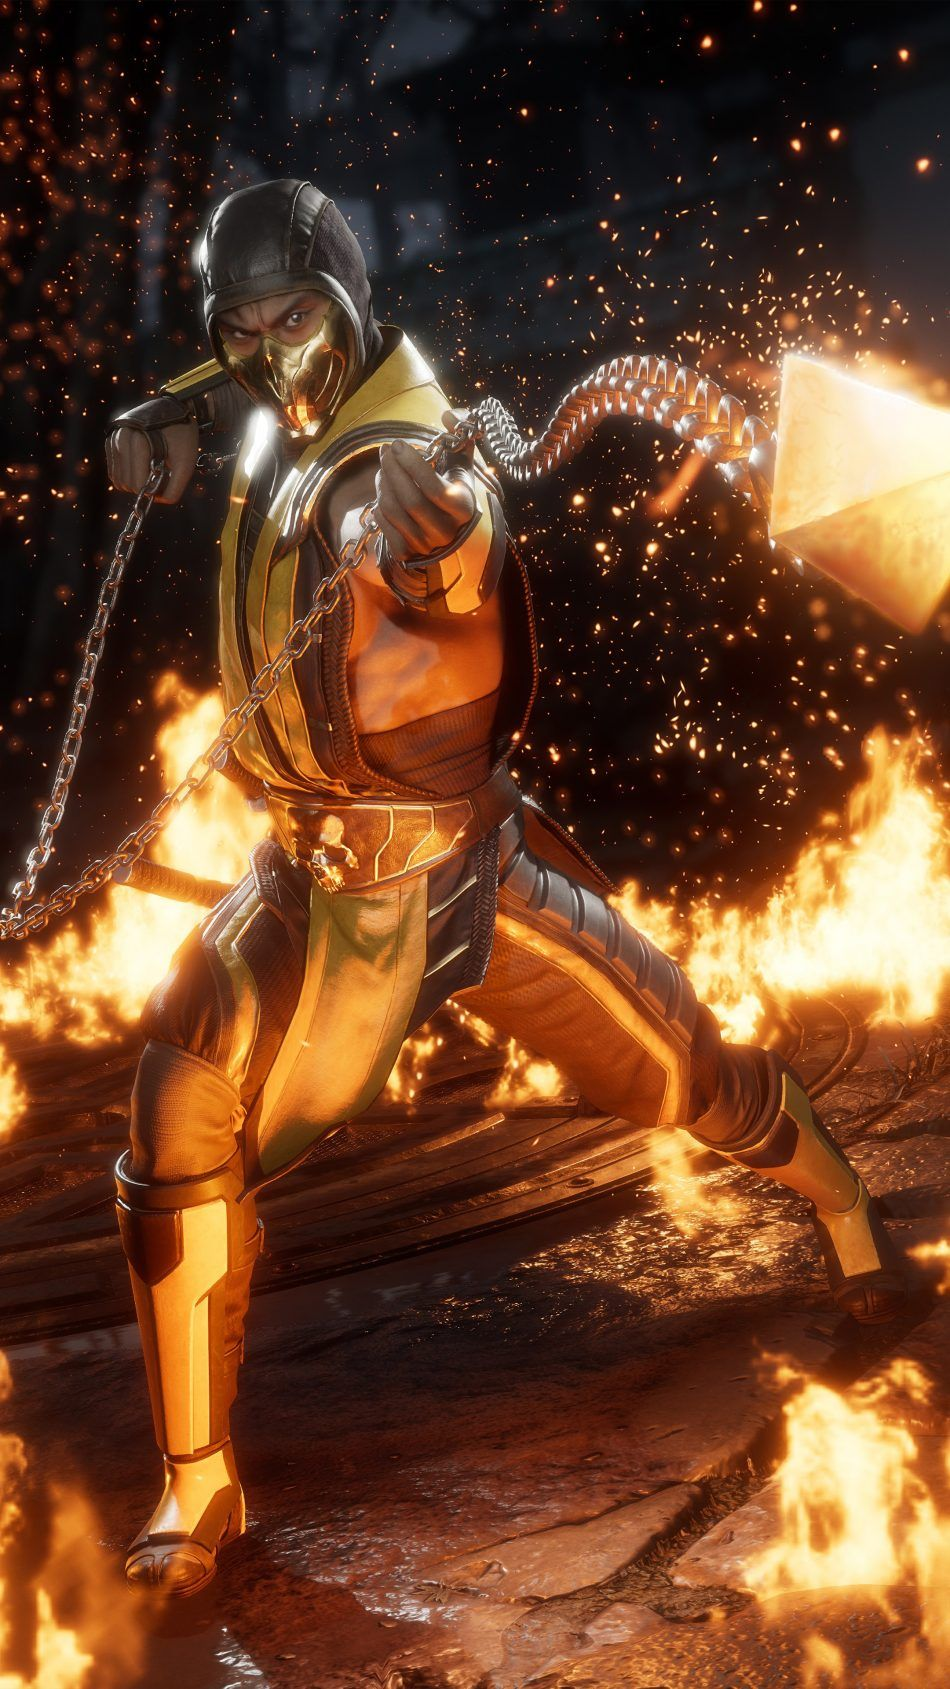 Scorpion Mortal Kombat 11 4k Ultra Hd Mobile Wallpaper Scorpion Mortal Kombat Mortal Kombat Memes Mortal Kombat X Wallpapers